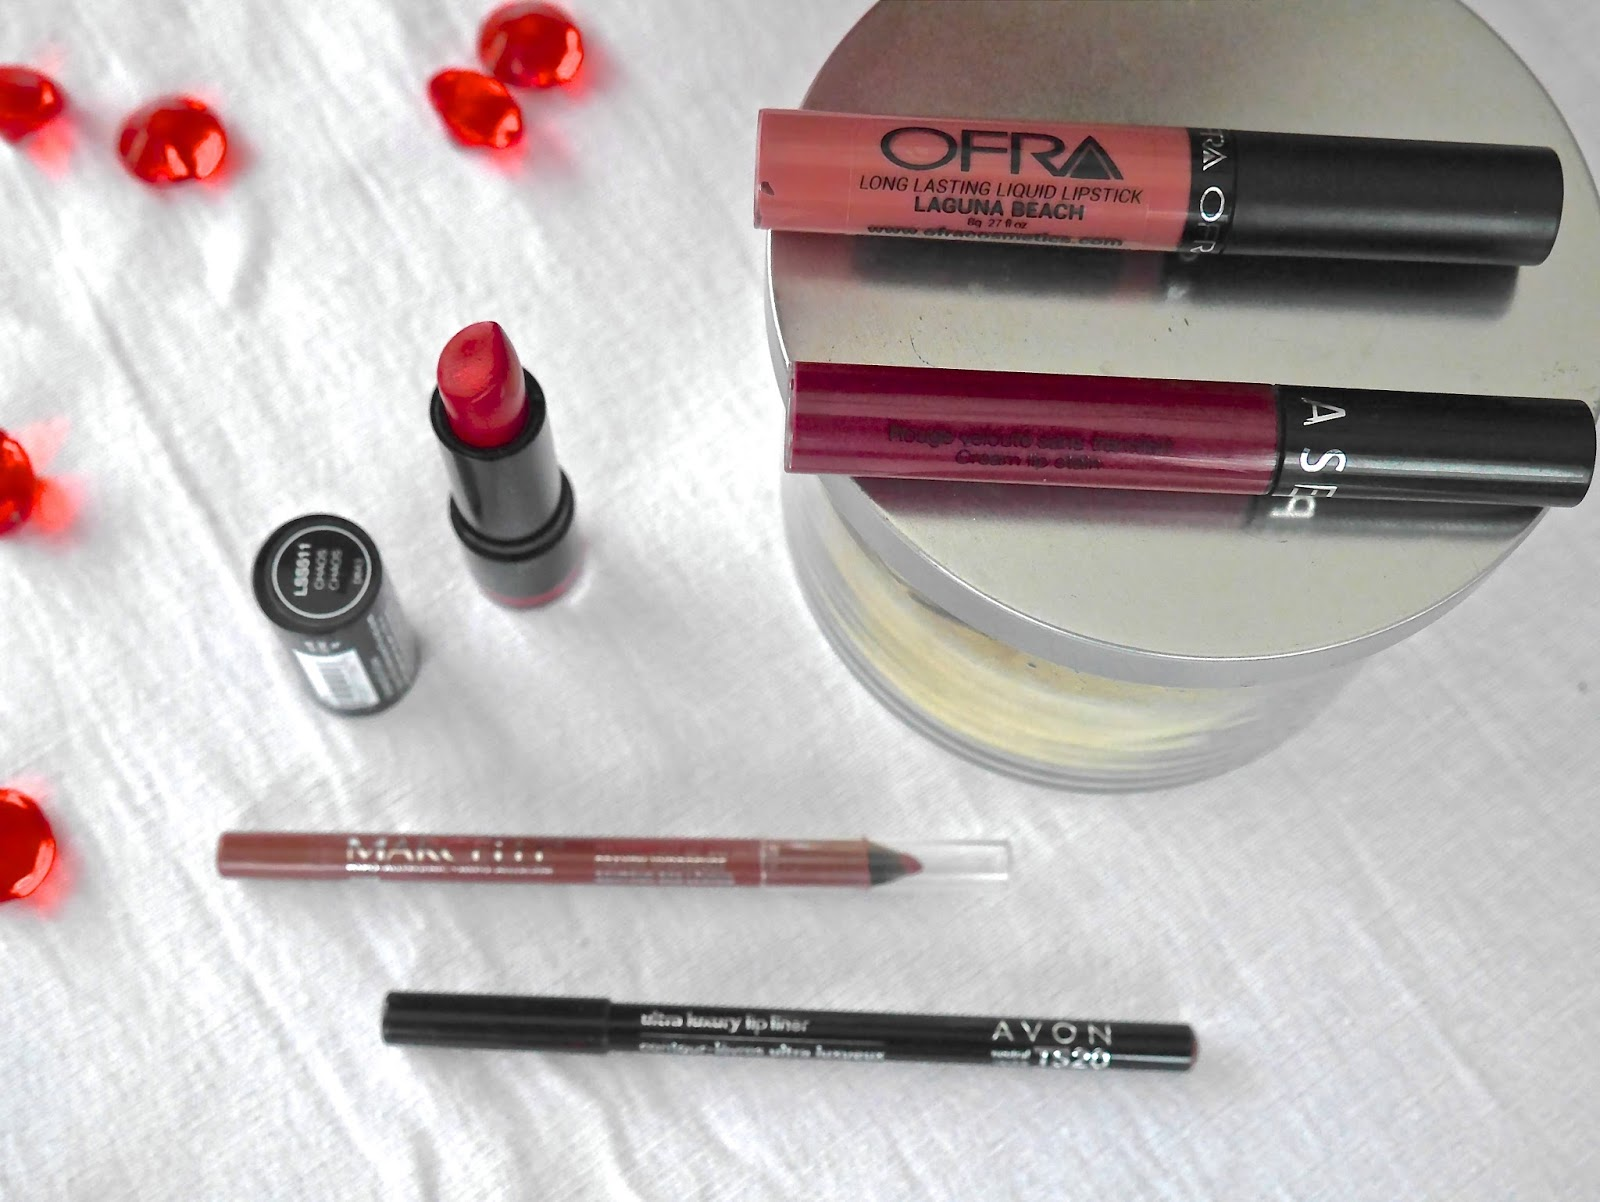 Favourite lipsticks for winter